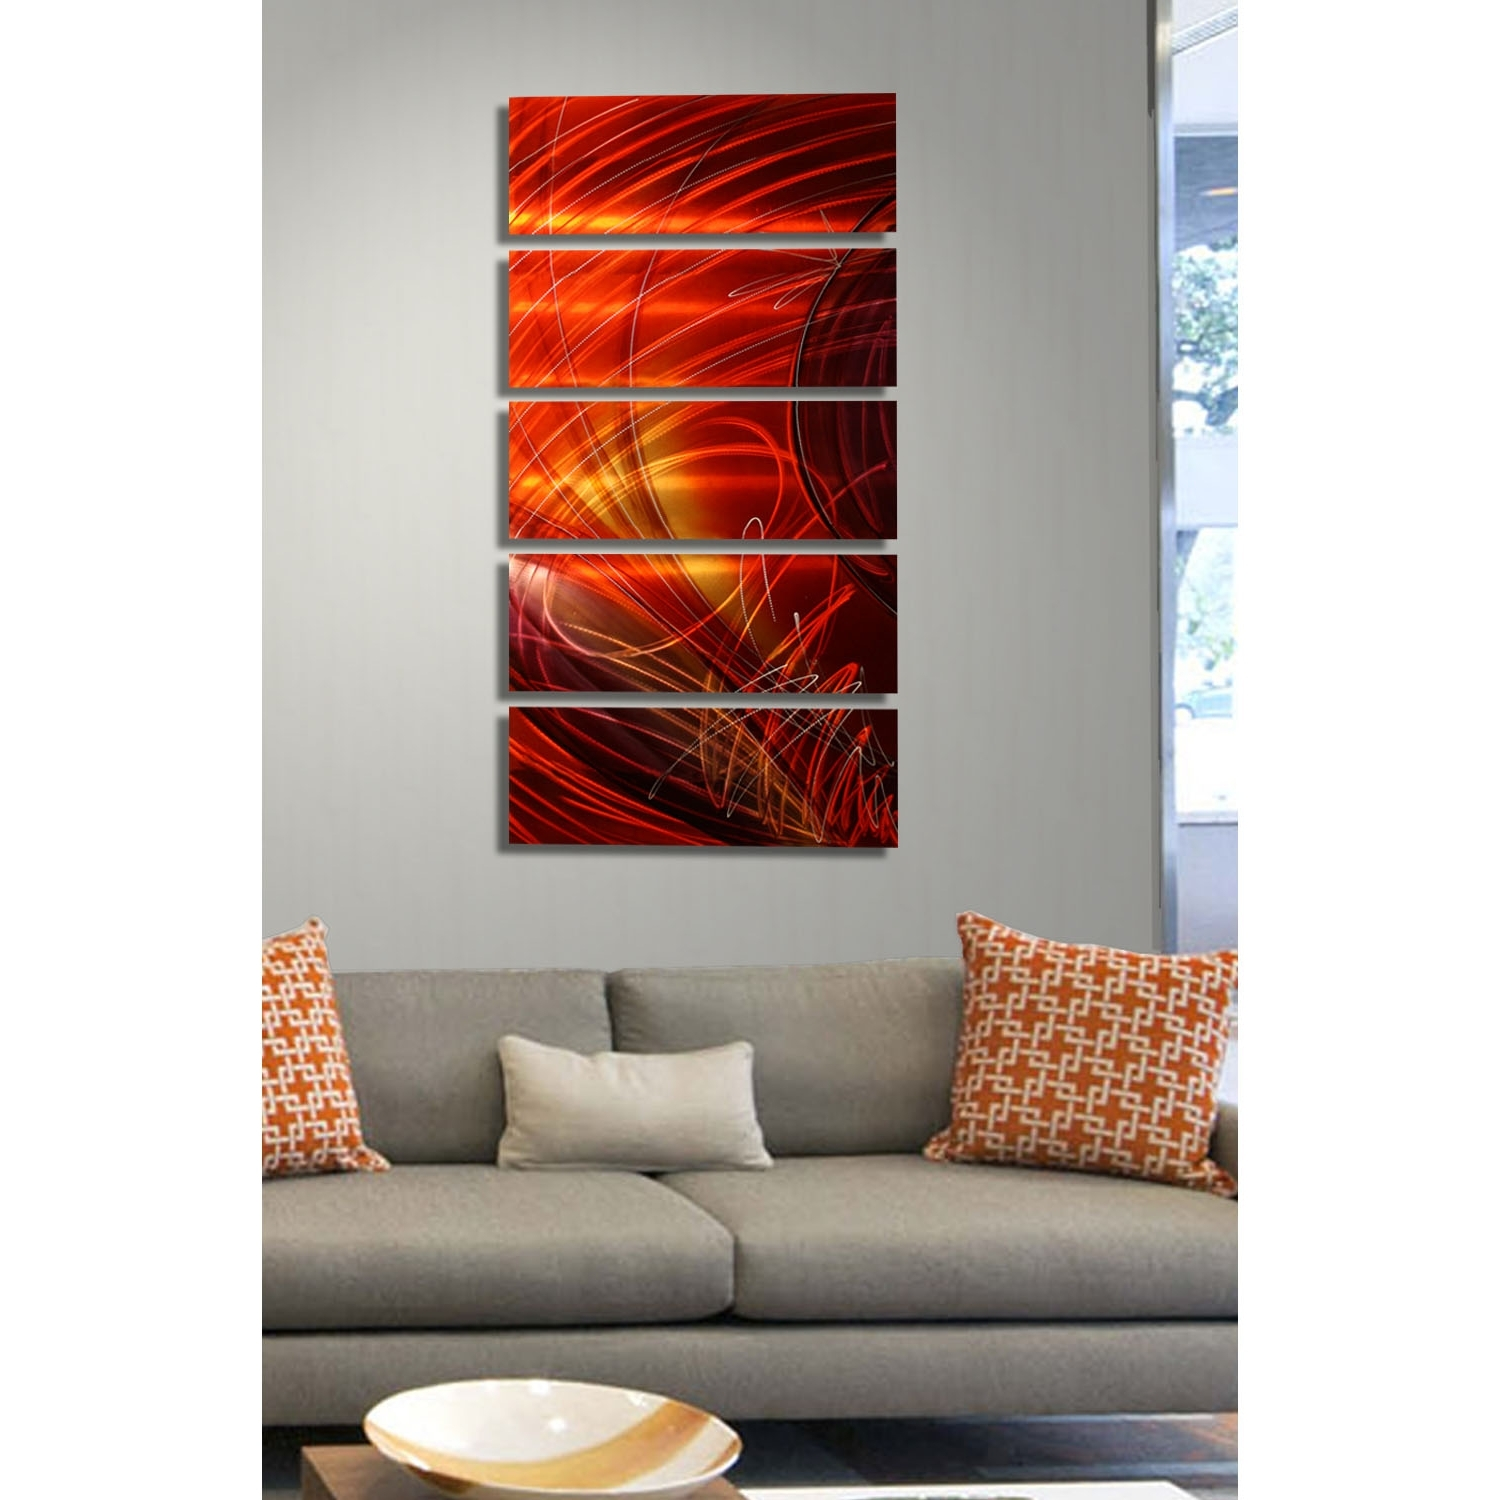 2017 5 Panel Wall Art In Ruby Sky – Red, Gold And Purple Metal Wall Art – 5 Panel Wall Décor (View 1 of 20)